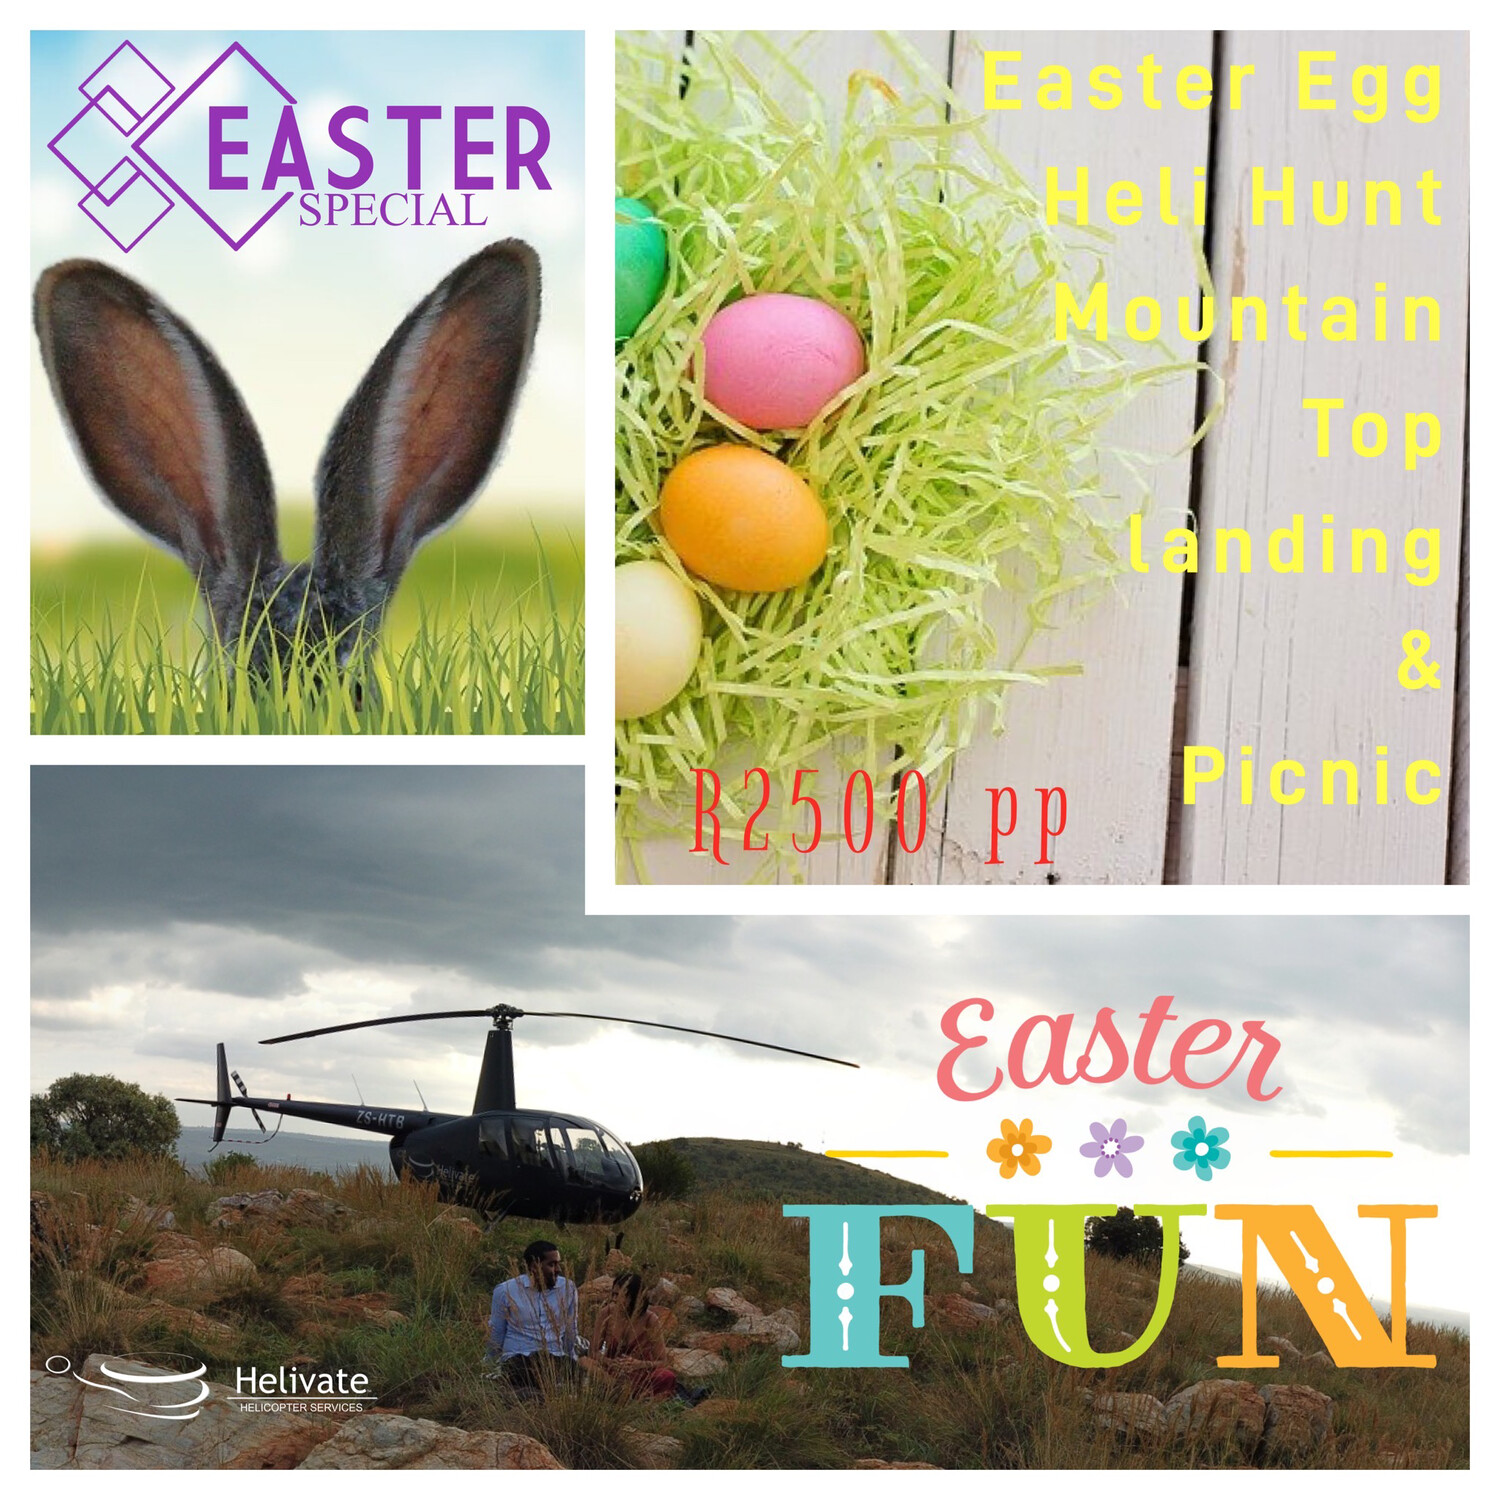 Easter special: Easter Egg Heli Hunt Mountain Top Landing & Picnic